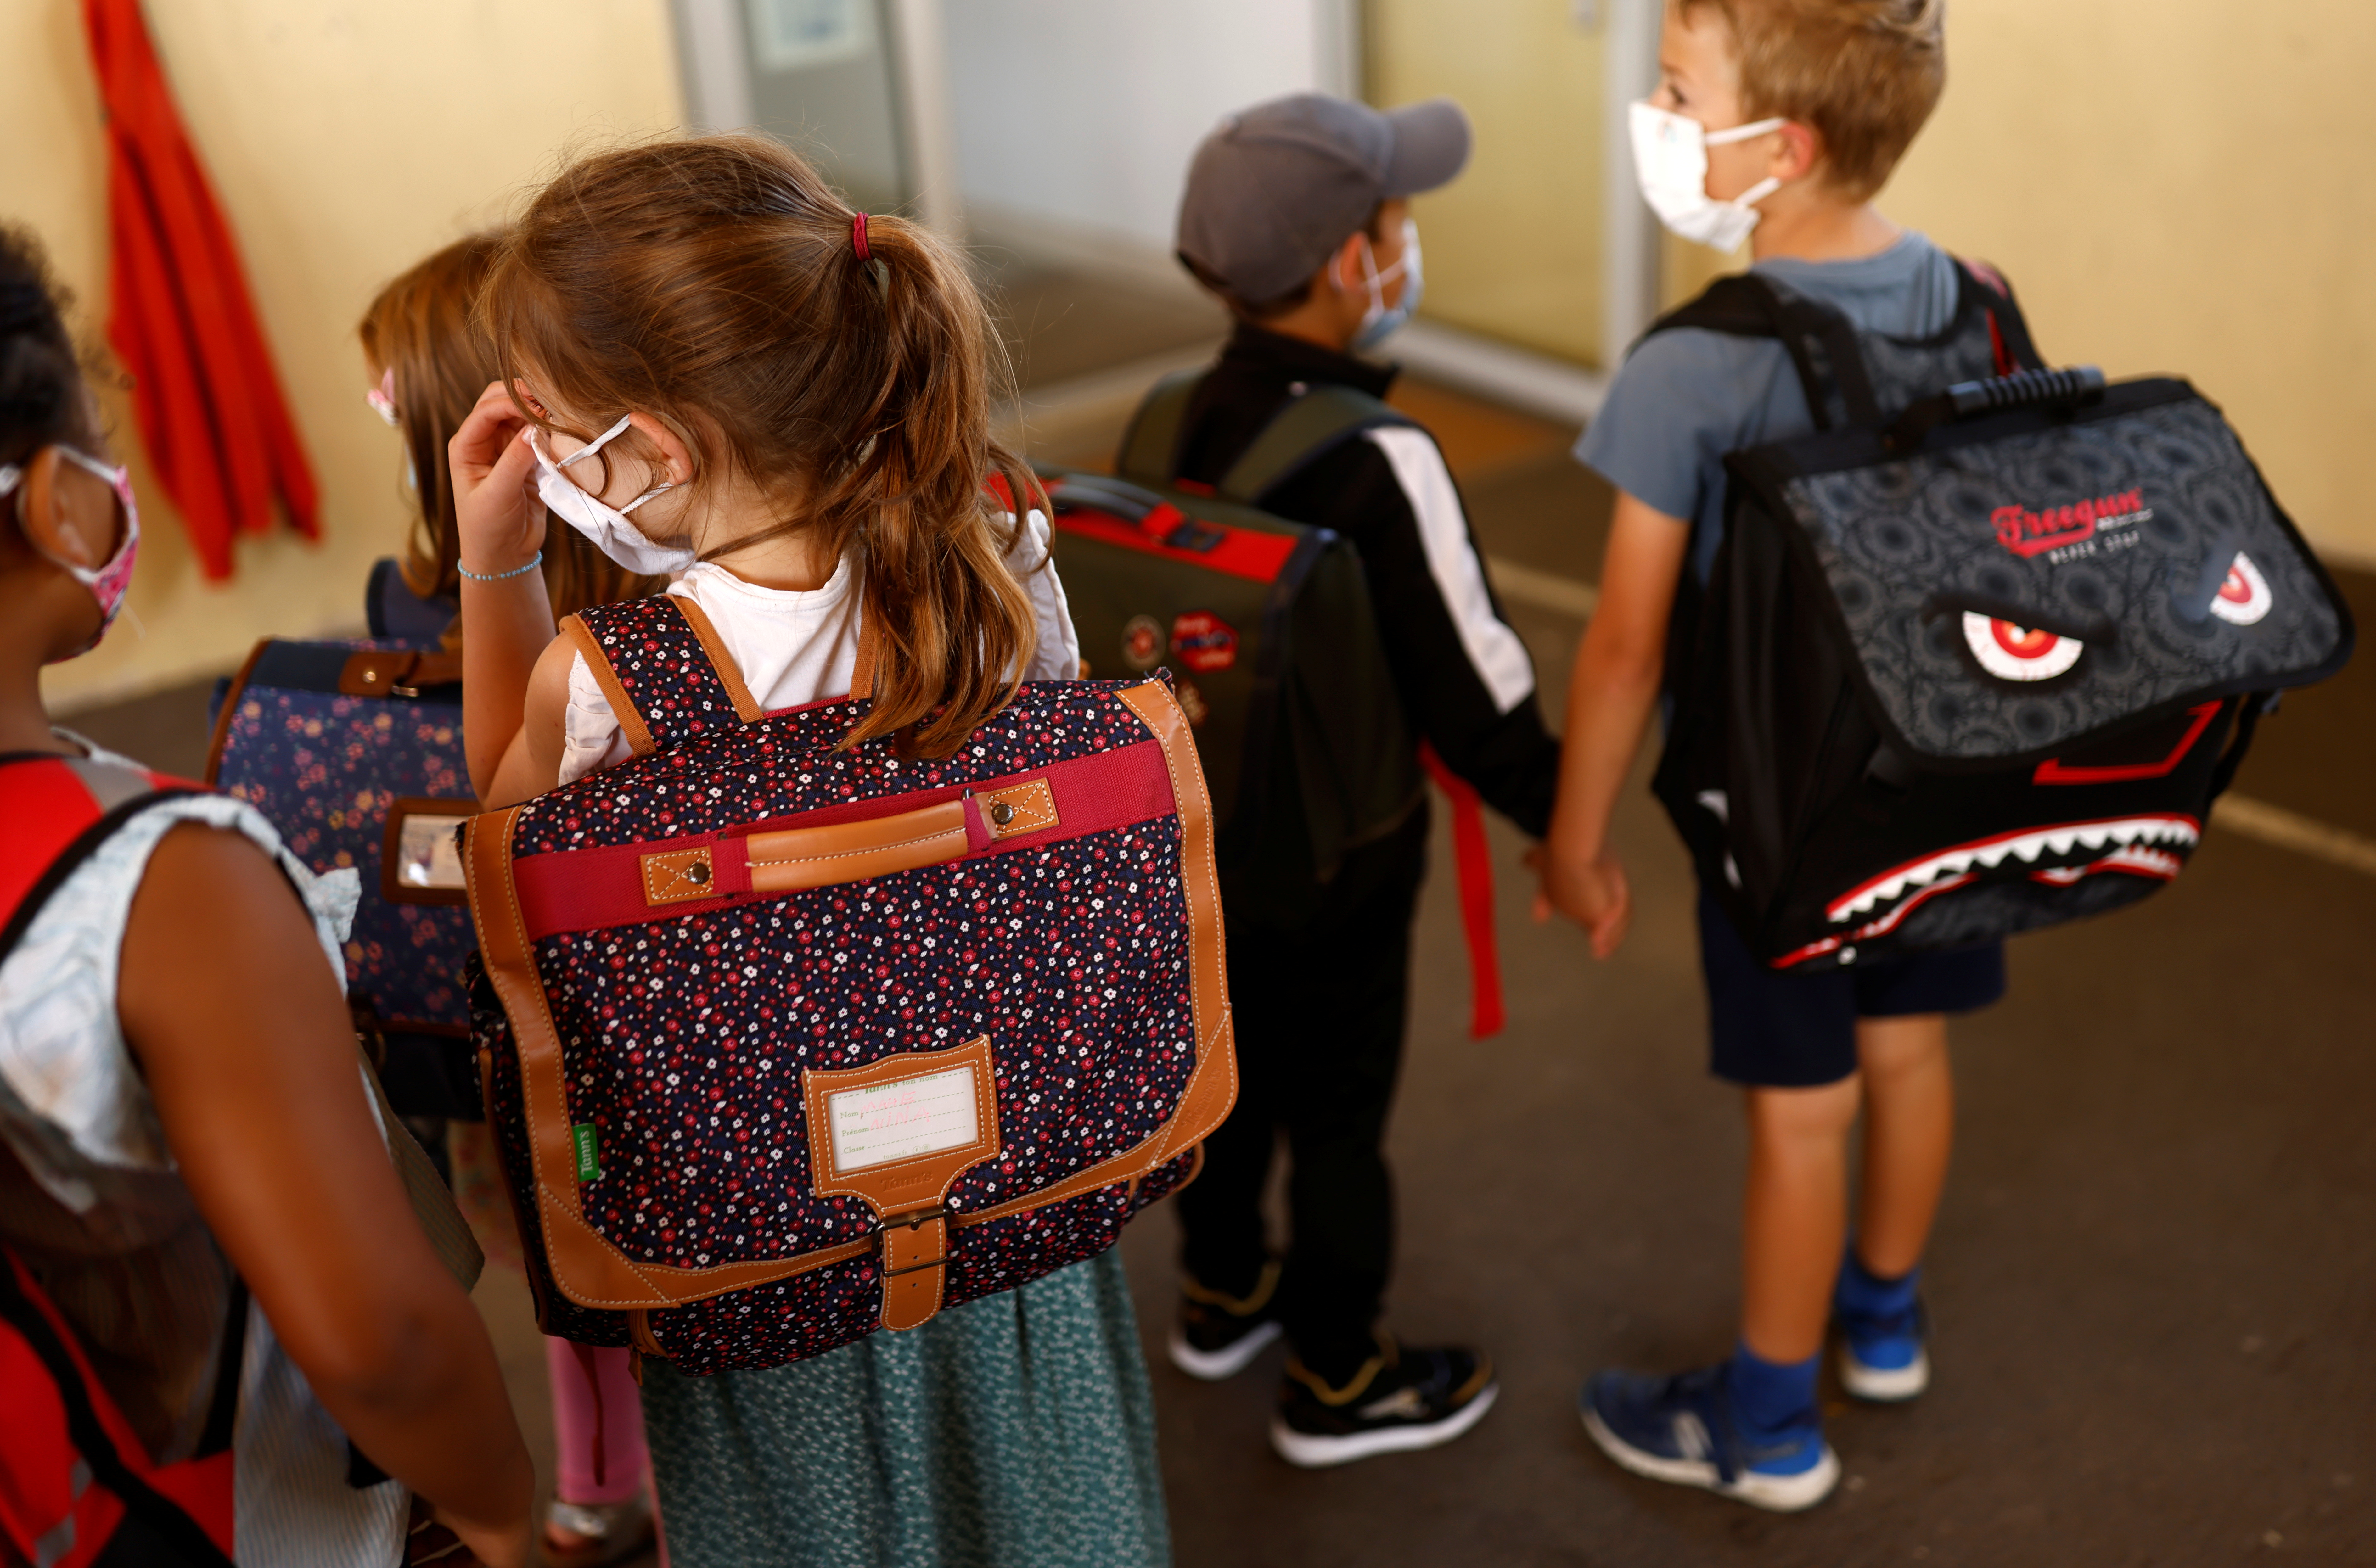 Schoolchildren, wearing protective face masks, gather as they arrive at a primary school on the first day of the new school year after summer break, in Vertou, France, September 2, 2021. REUTERS/Stephane Mahe